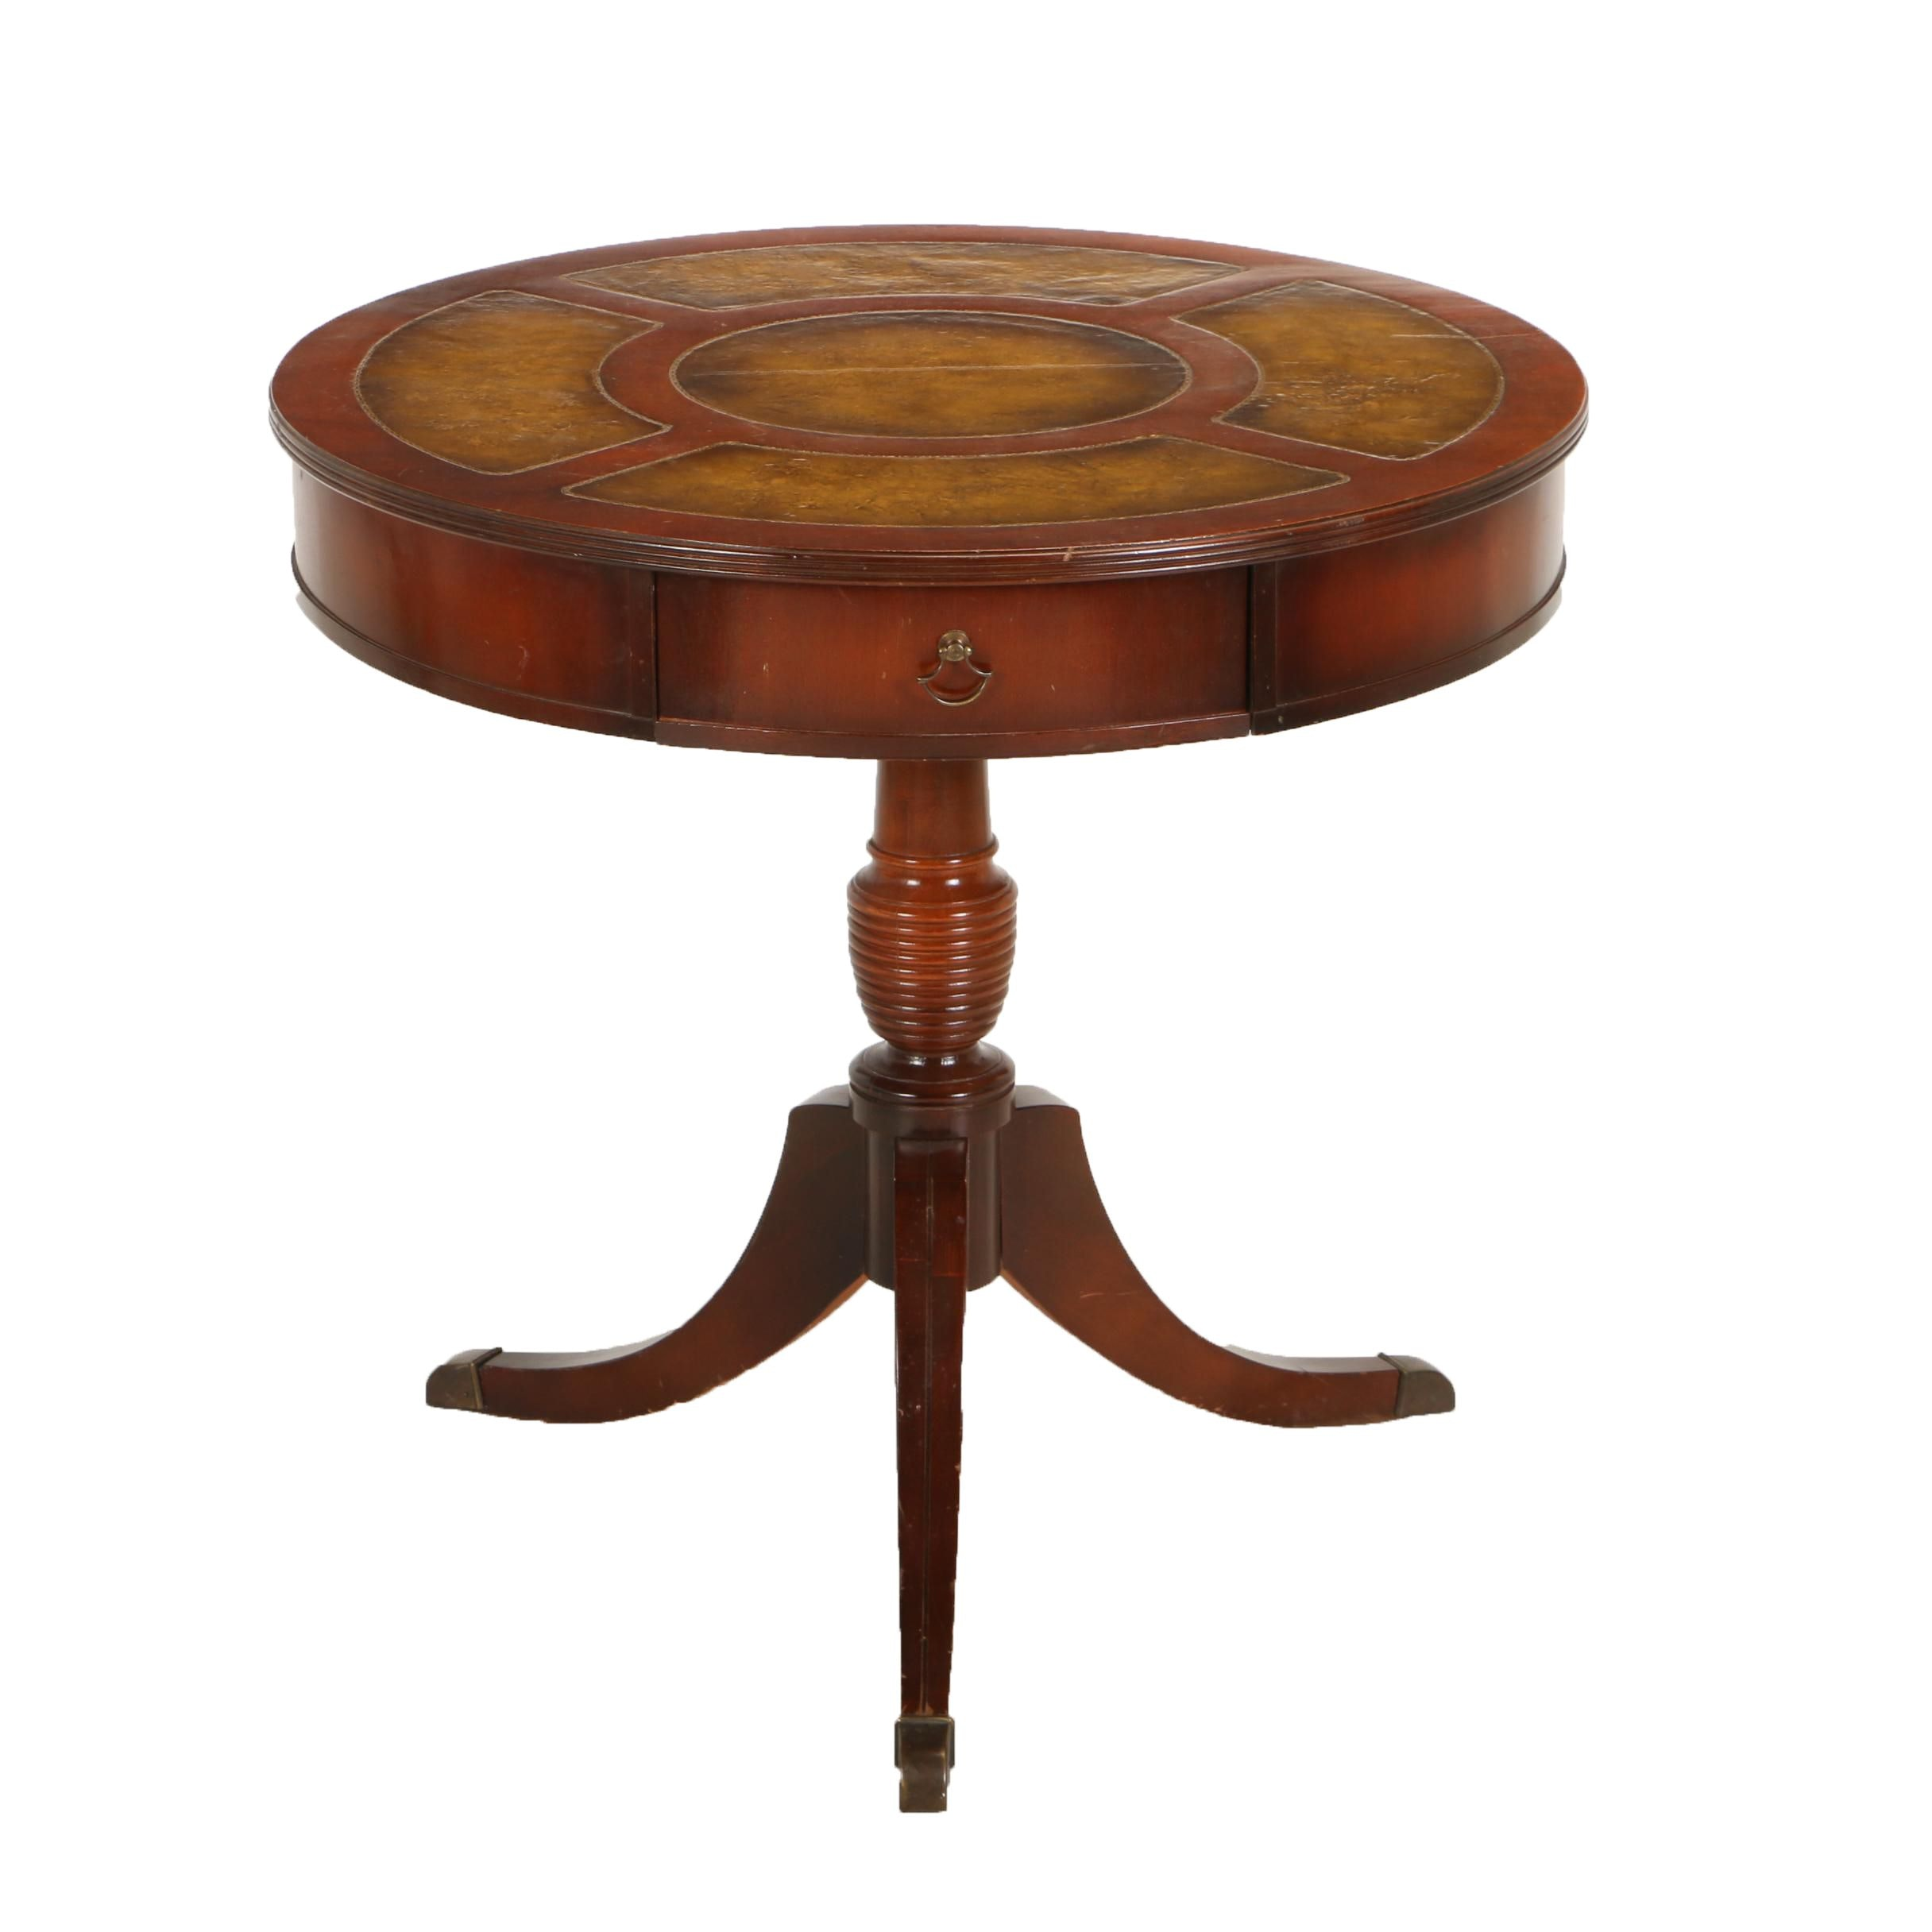 Classical Style Mahogany and Leather Drum Table, 20th Century